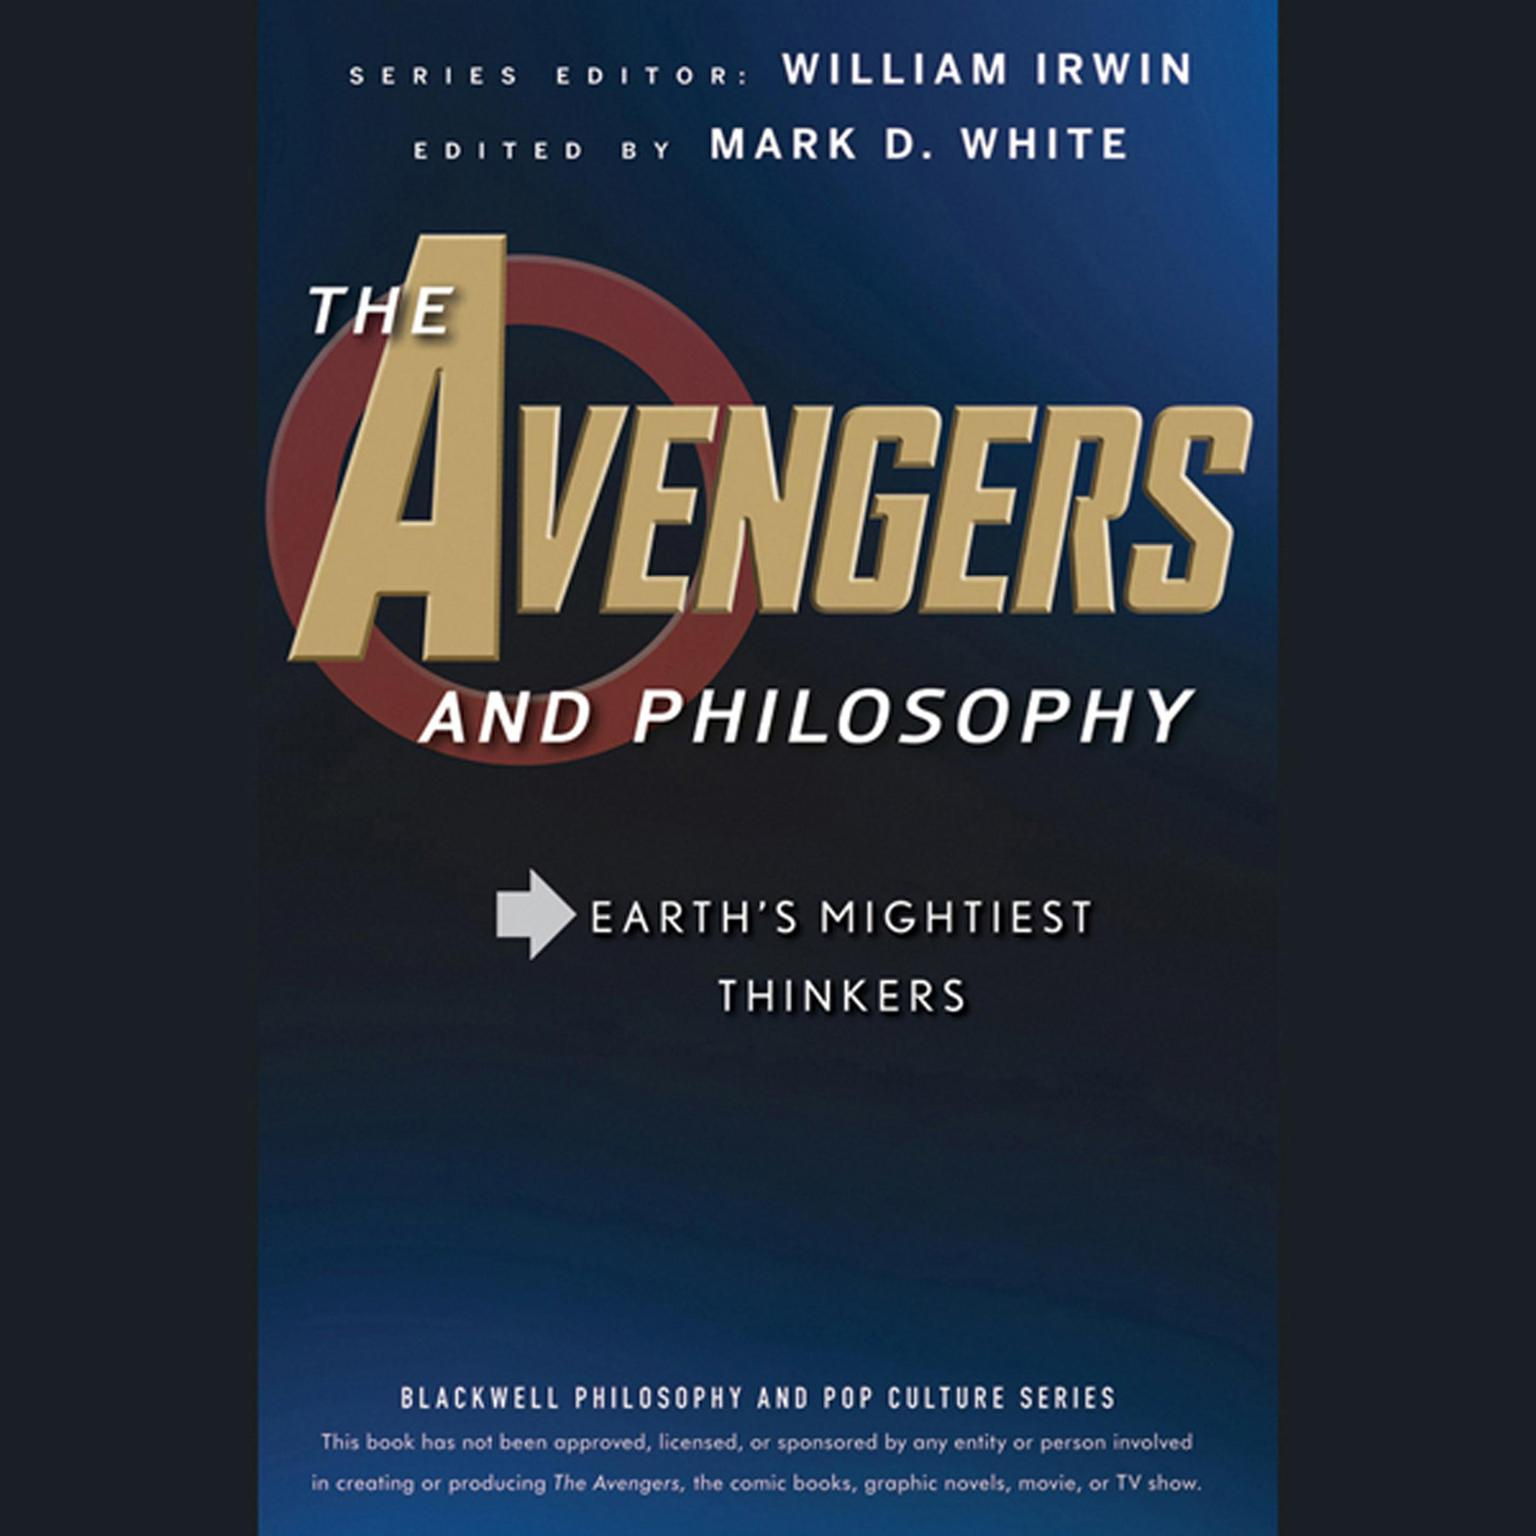 The Avengers and Philosophy: Earths Mightiest Thinkers Audiobook, by William Irwin